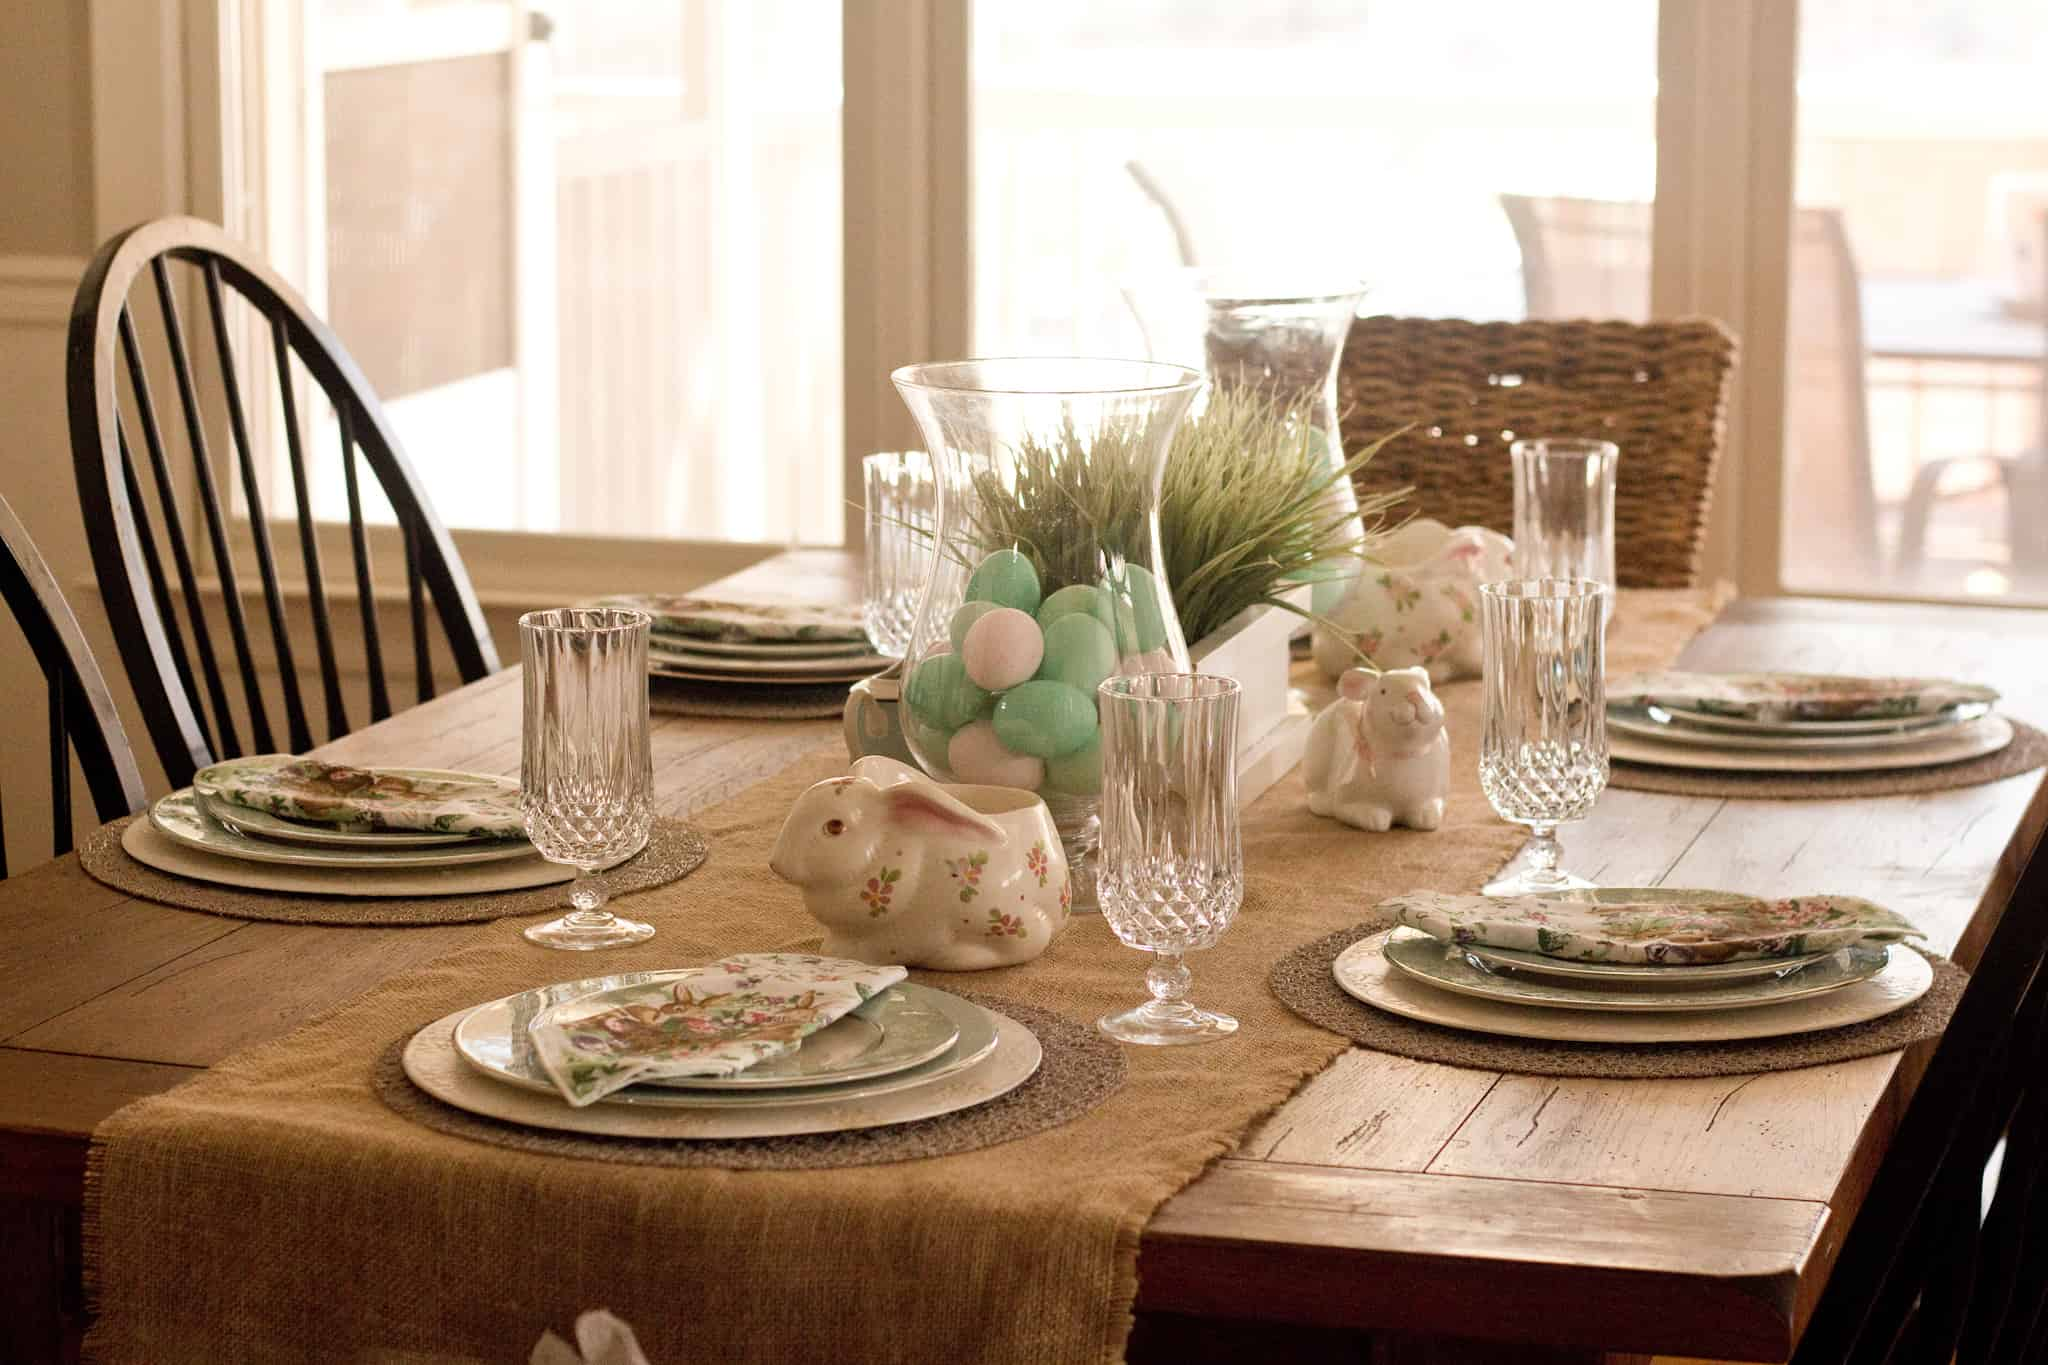 Easy Bunny Table Runner Made With Burlap & Bunny Table Runner and Thrifted Table Setting | Savvy Apron